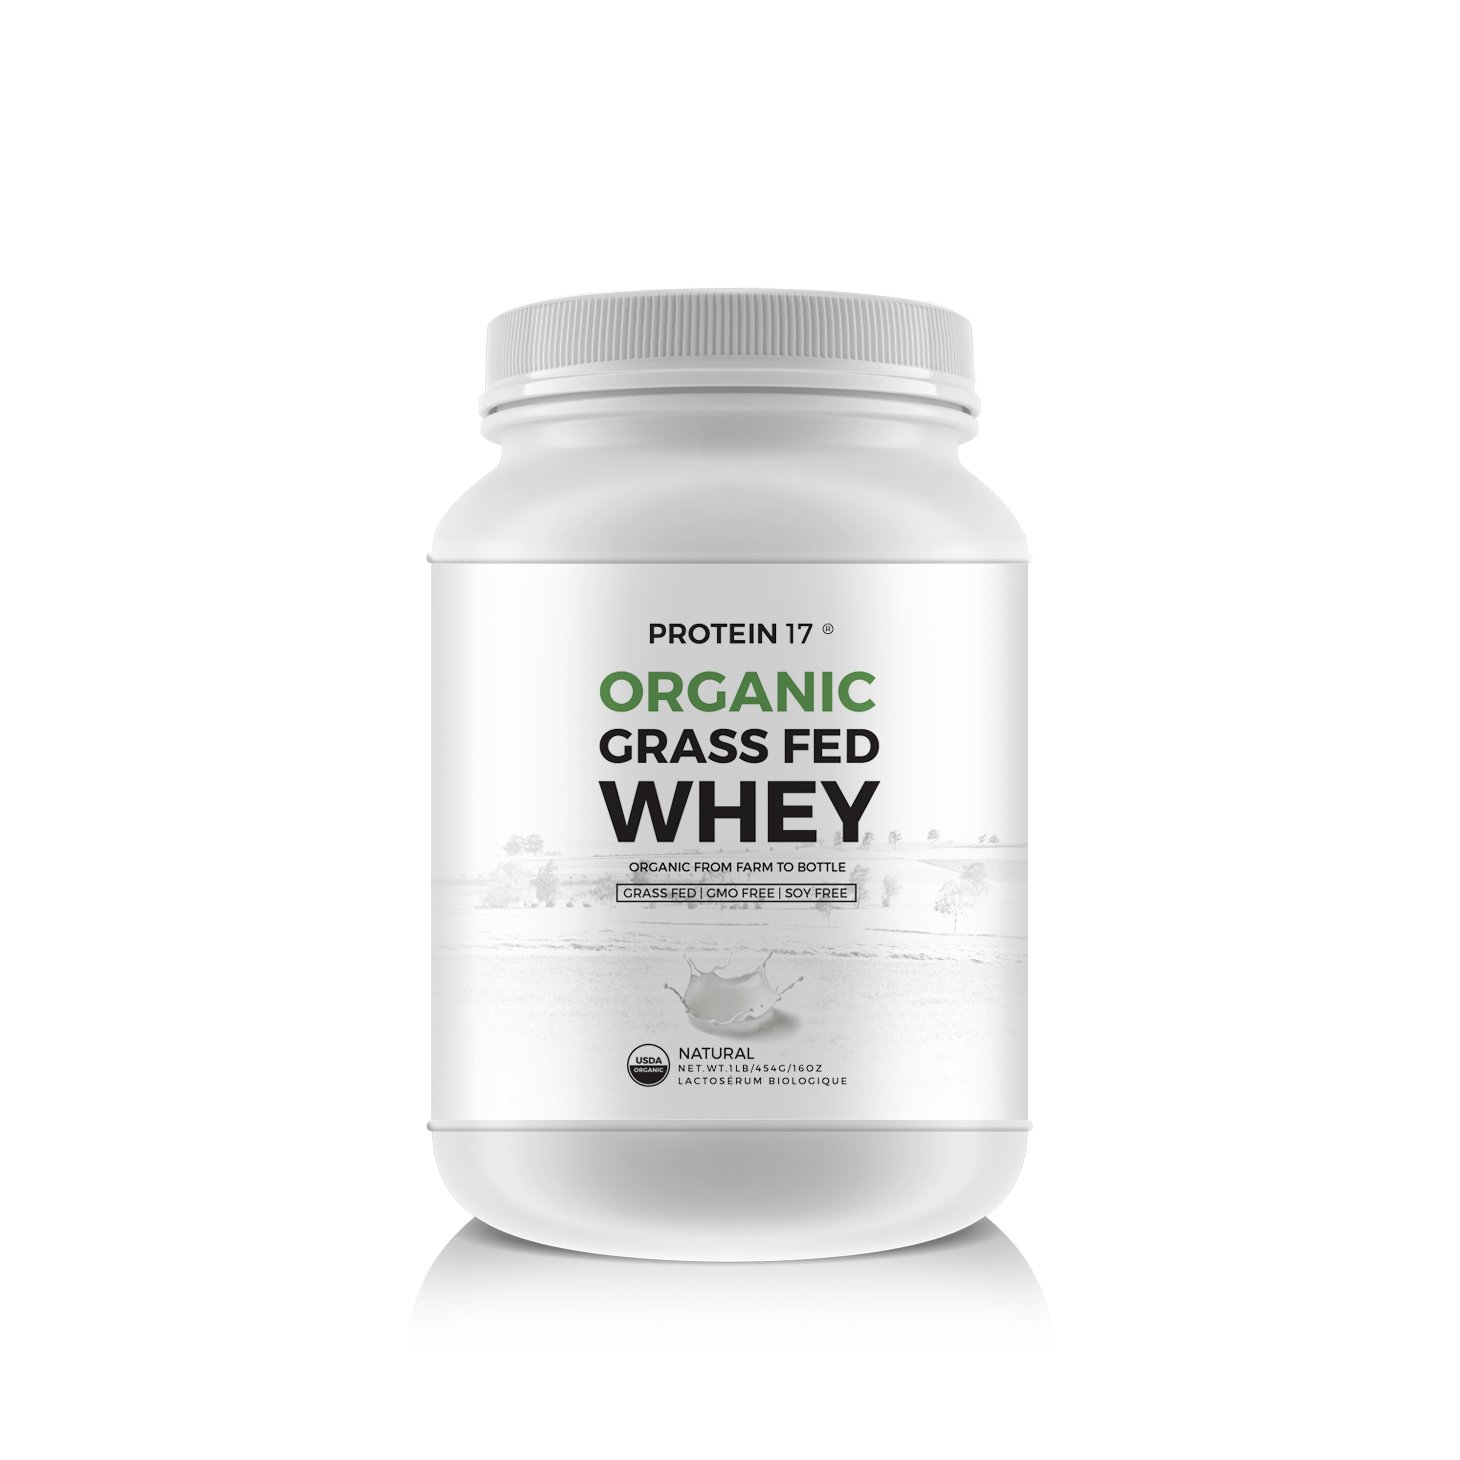 New and Unique – The Ultimate Organic, Grass-Fed Whey Protein, Delicious, 1lb 16oz 454g – Protein 17 – Excellent Value by Weight